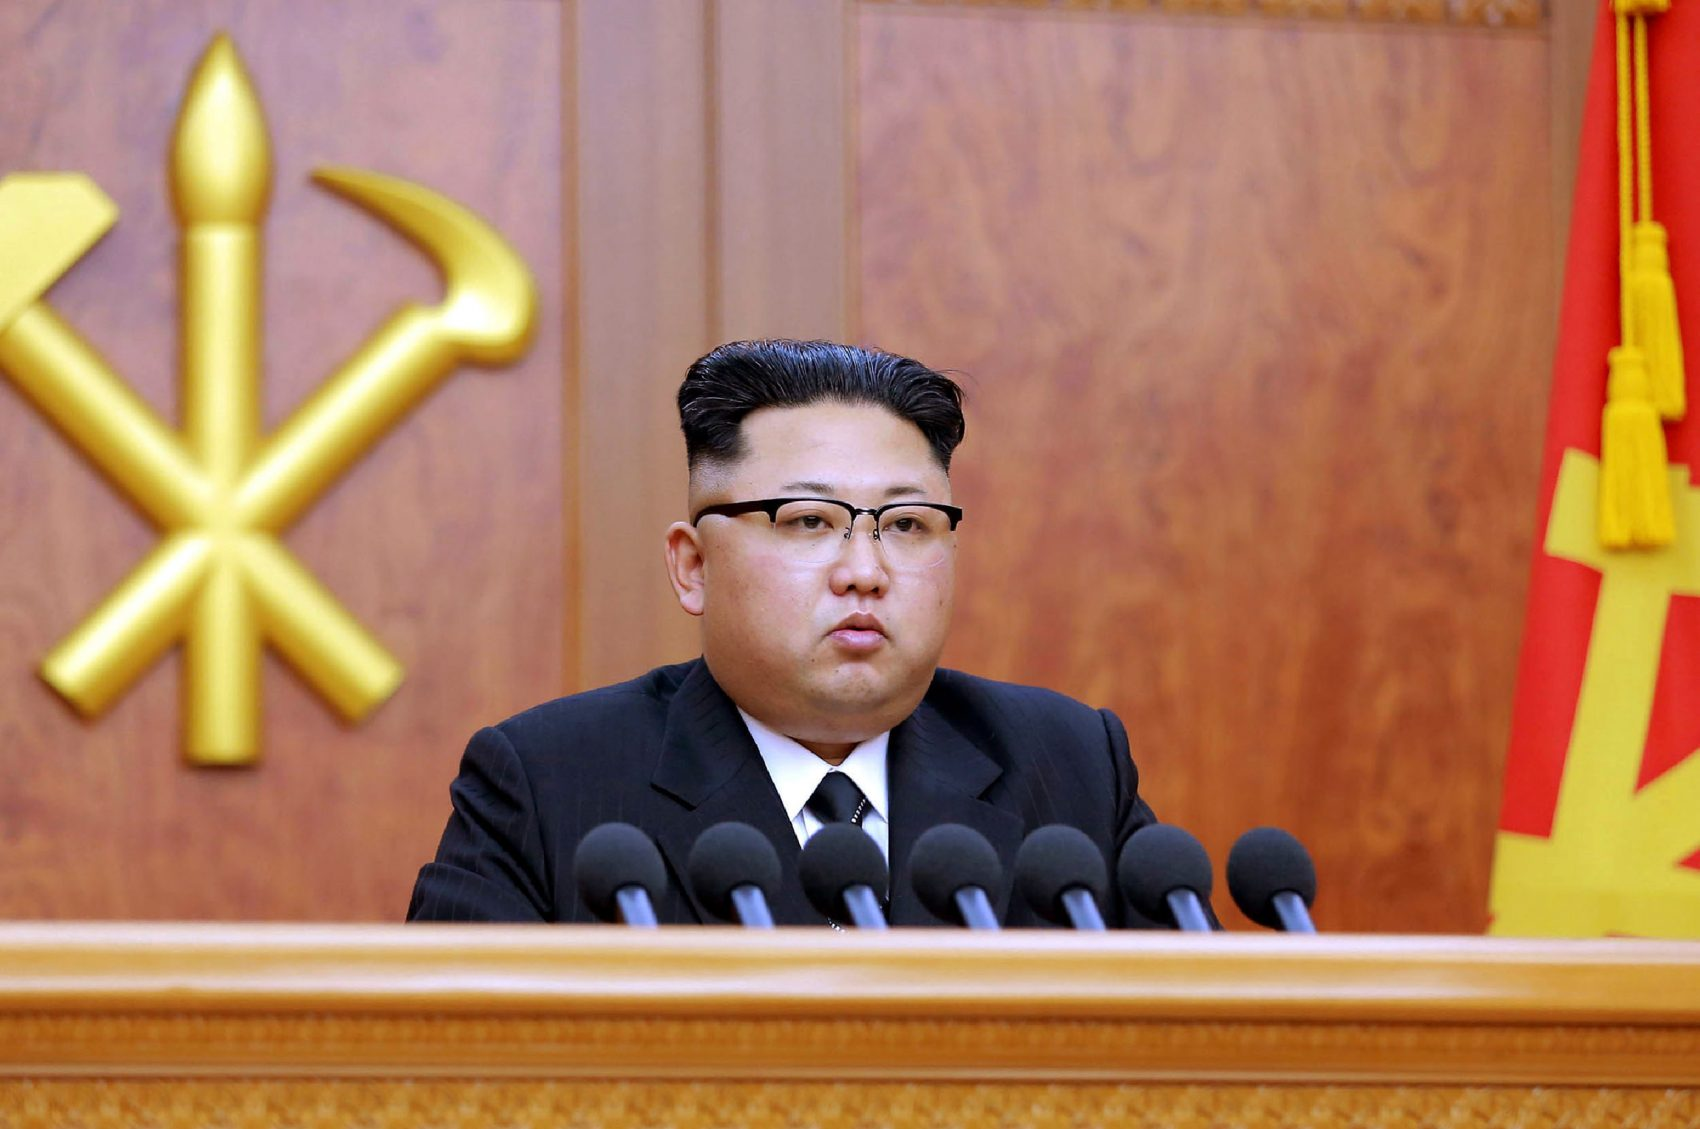 This picture released by North Korean news agency Korean Central News Agency (KCNA) on Jan. 1, 2017 shows North Korean leader Kim Jong-Un delivering the new year message in Pyongyang. (Stringer/AFP/Getty Images)